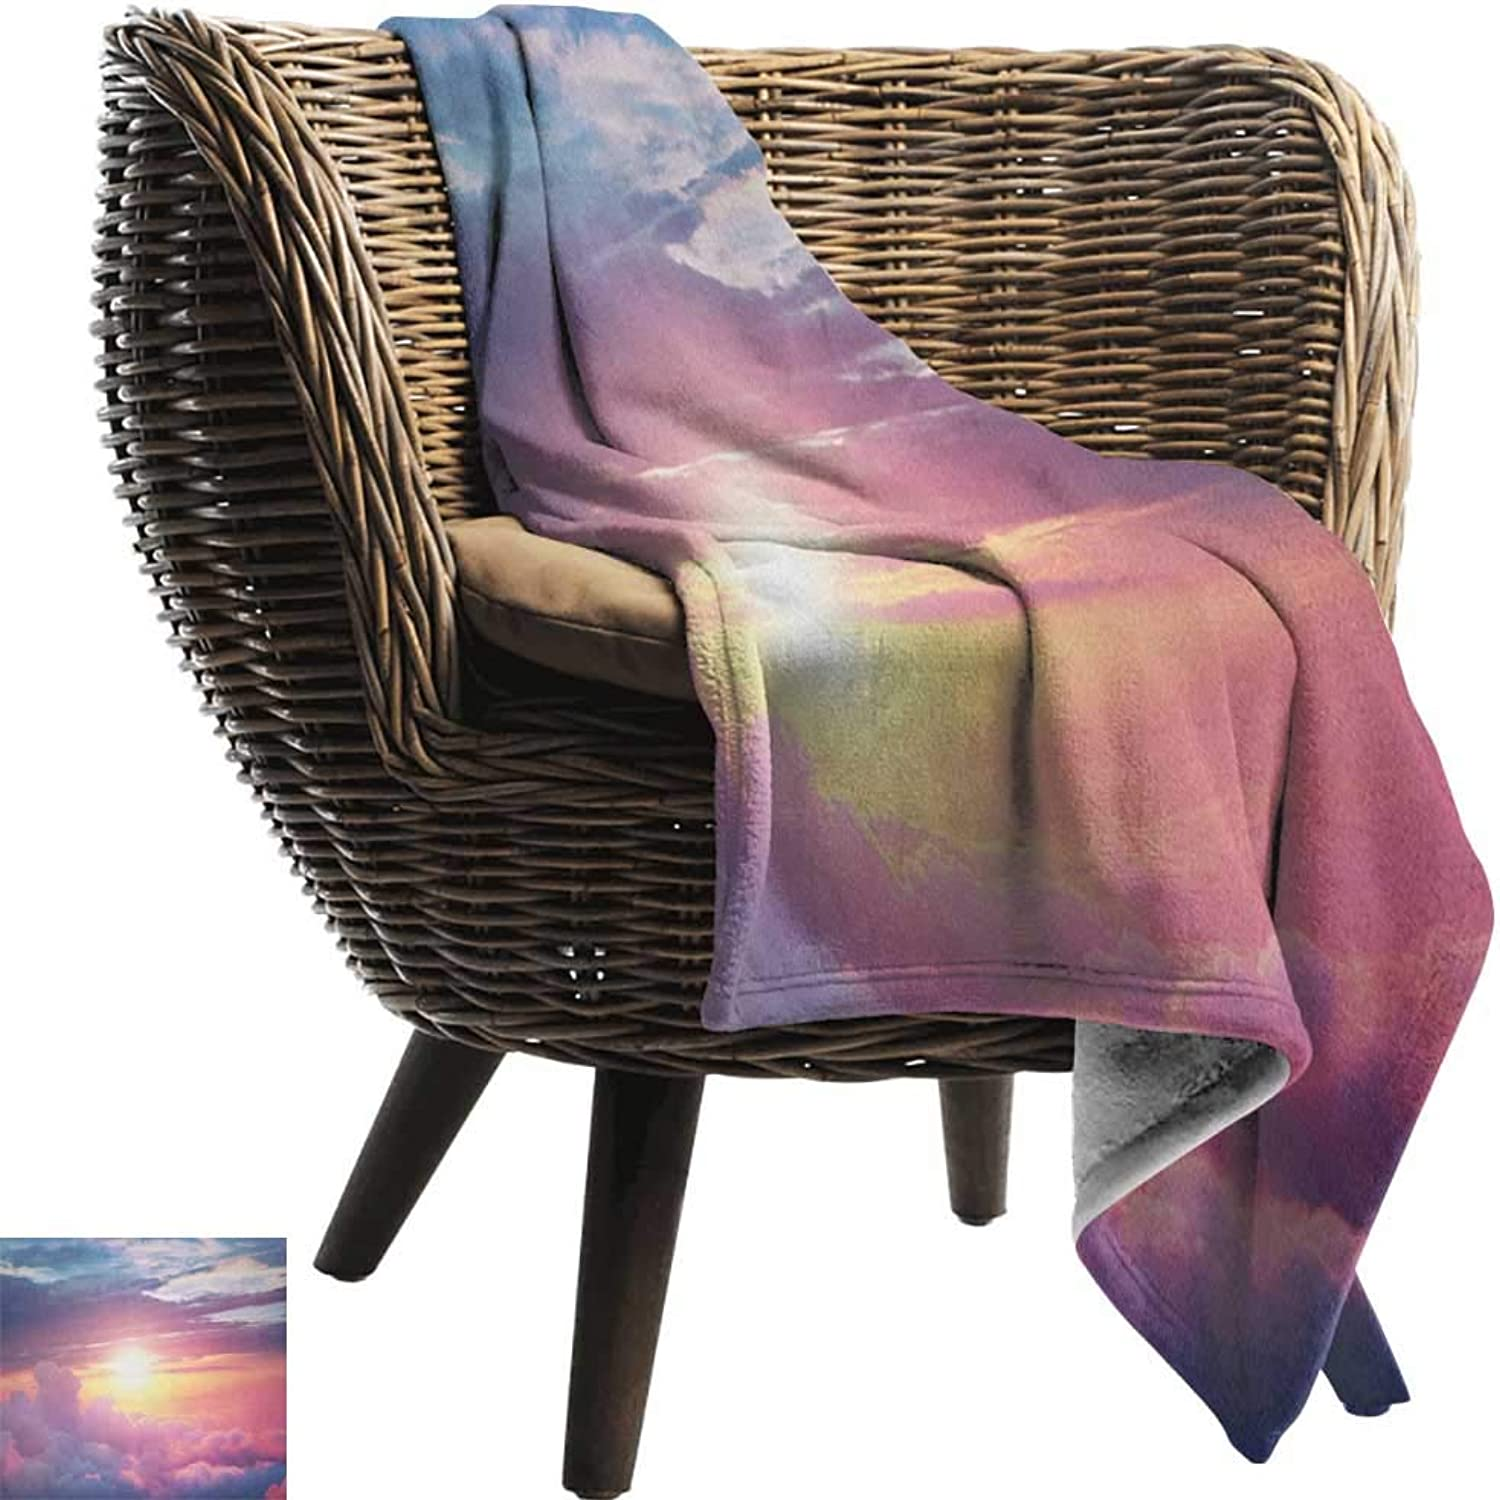 AndyTours Swaddle Blanket,Sun,Surreal Sky with Fluffy Clouds Dreamy Horizon Tranquility Panorama, Baby Pink Yellow Pale bluee,Lightweight Extra Soft Skin Fabric,Not Allergic 50 x70